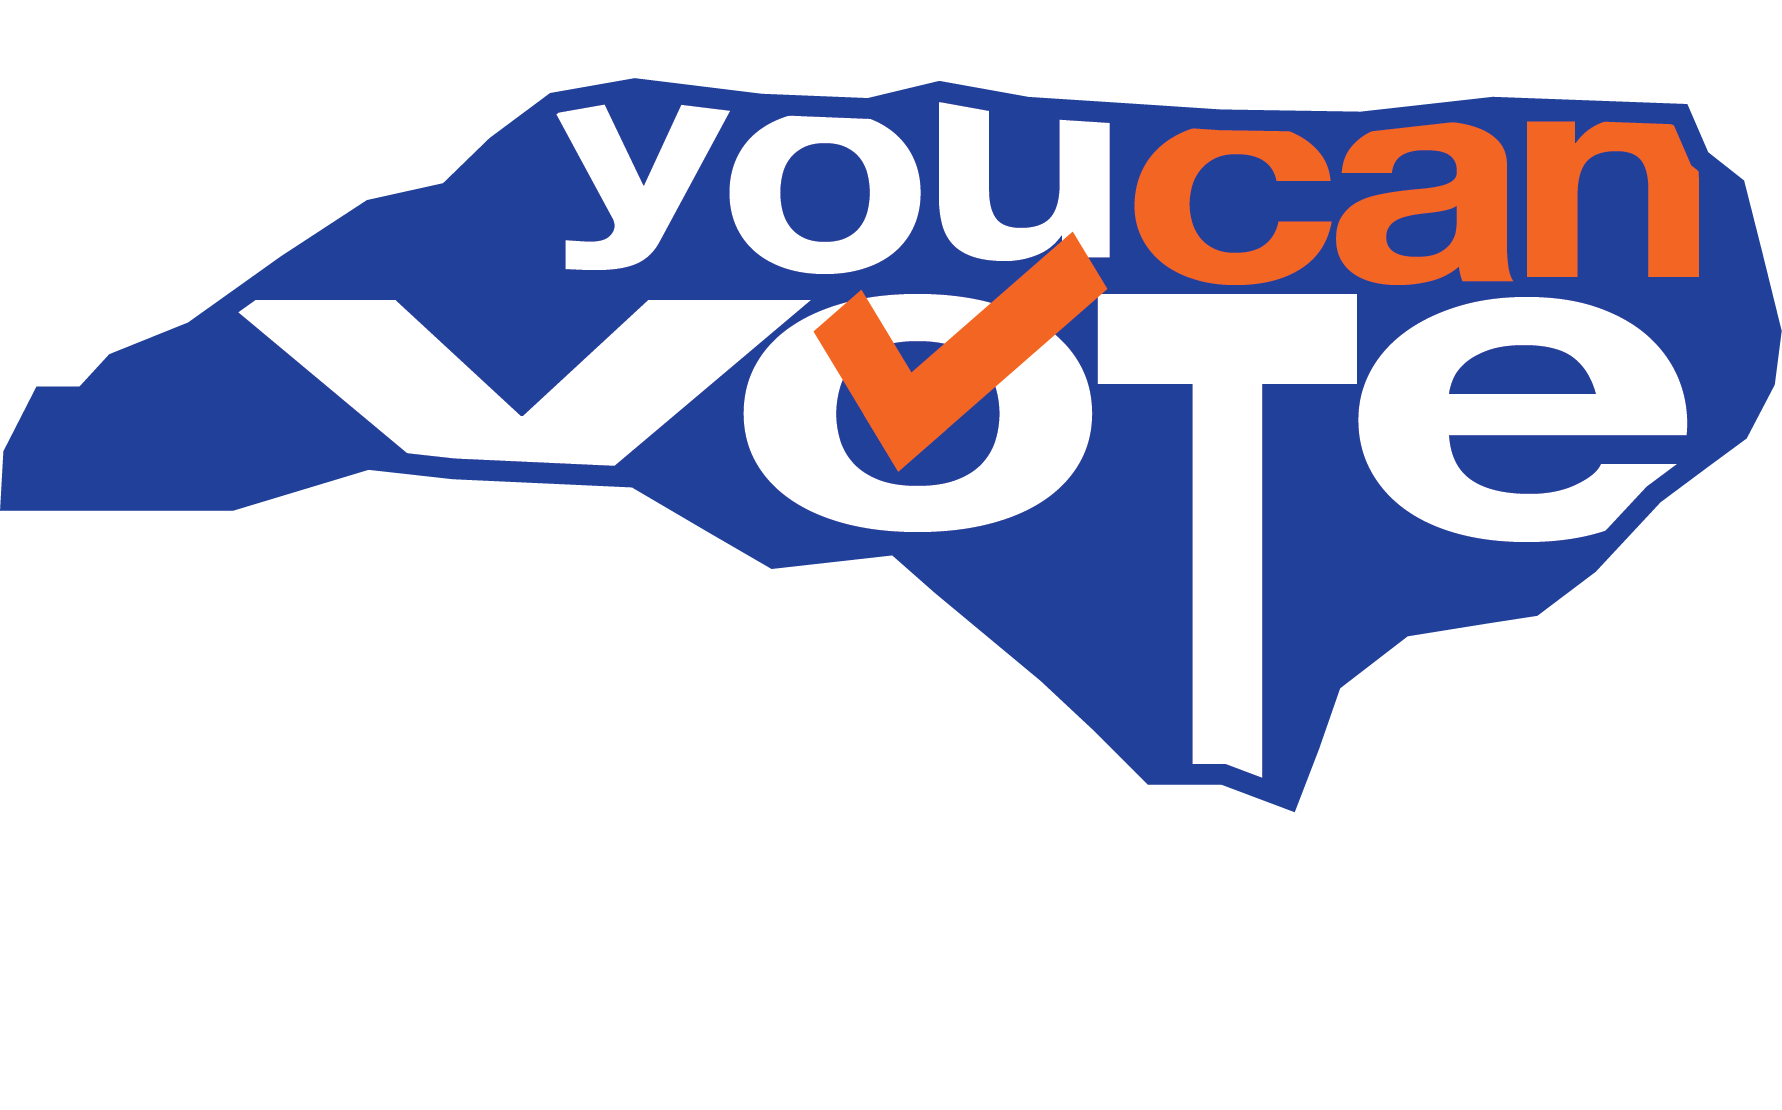 logo-YouCanVote.png